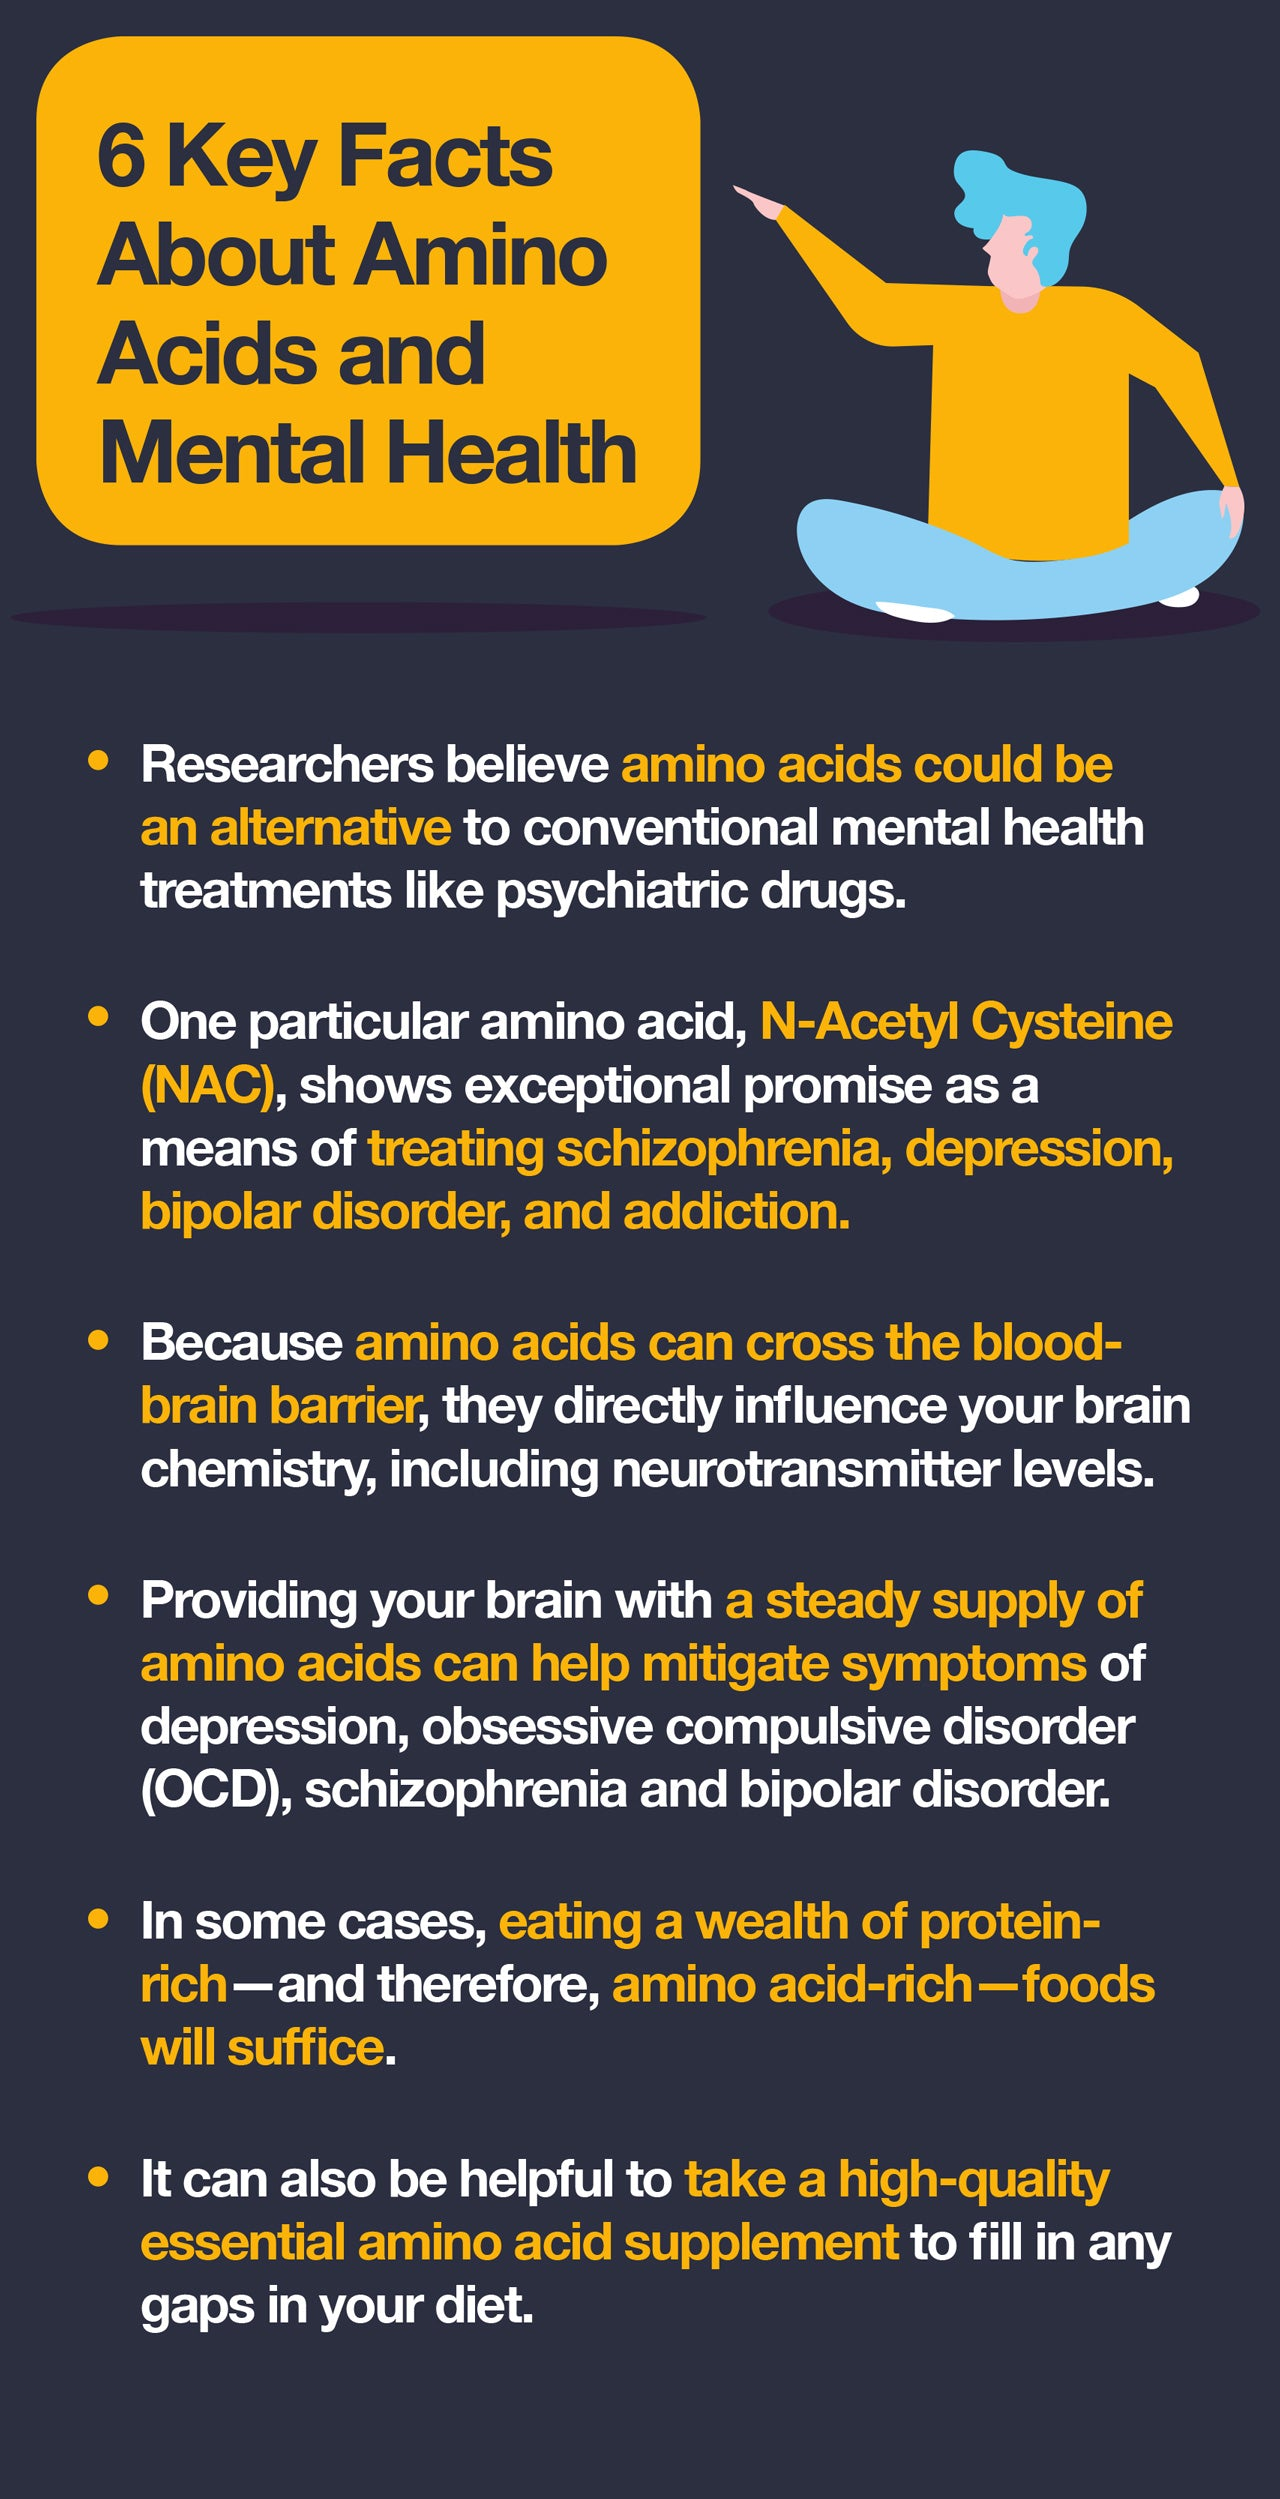 5 Key Facts About Amino Acids and Mental Health